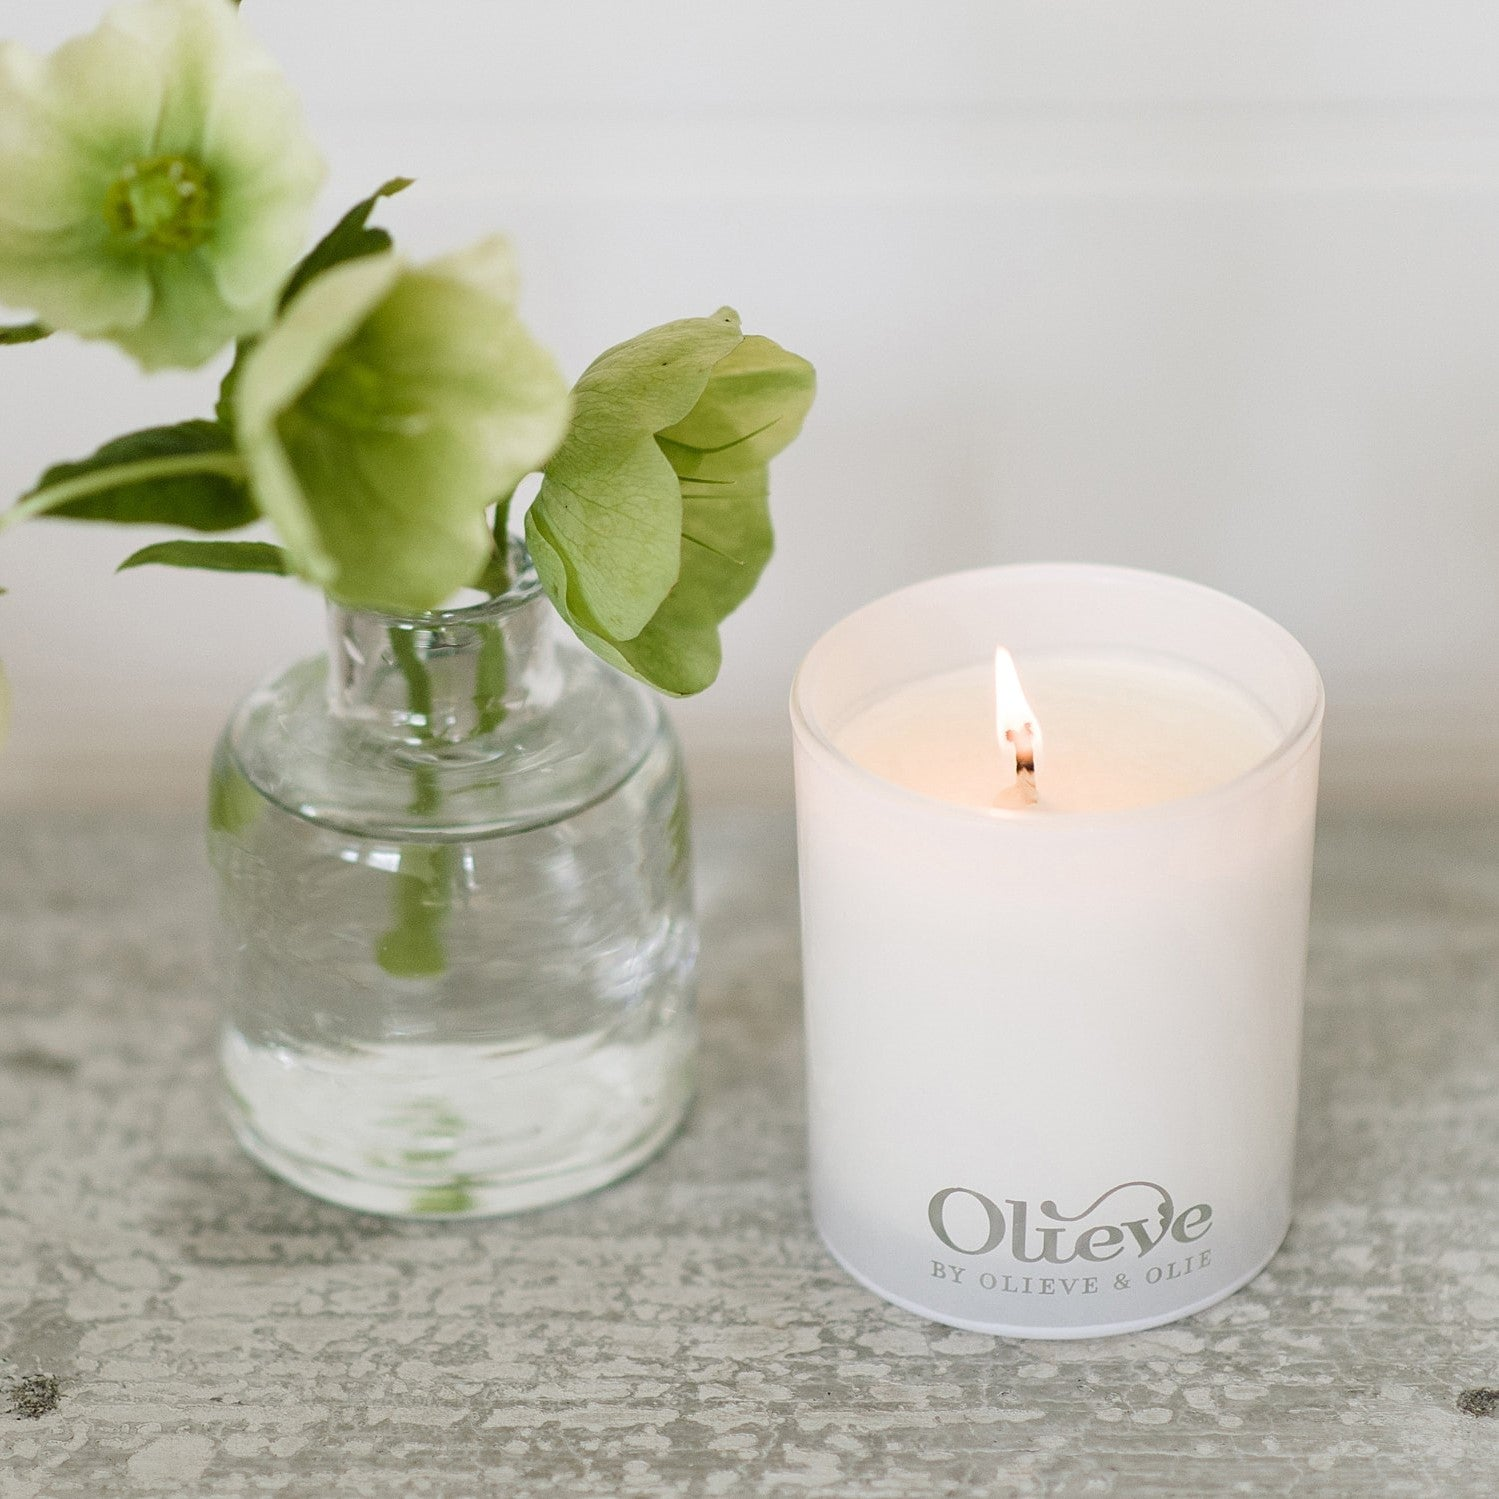 luxurious hand poured olive oil and pure soy wax candle